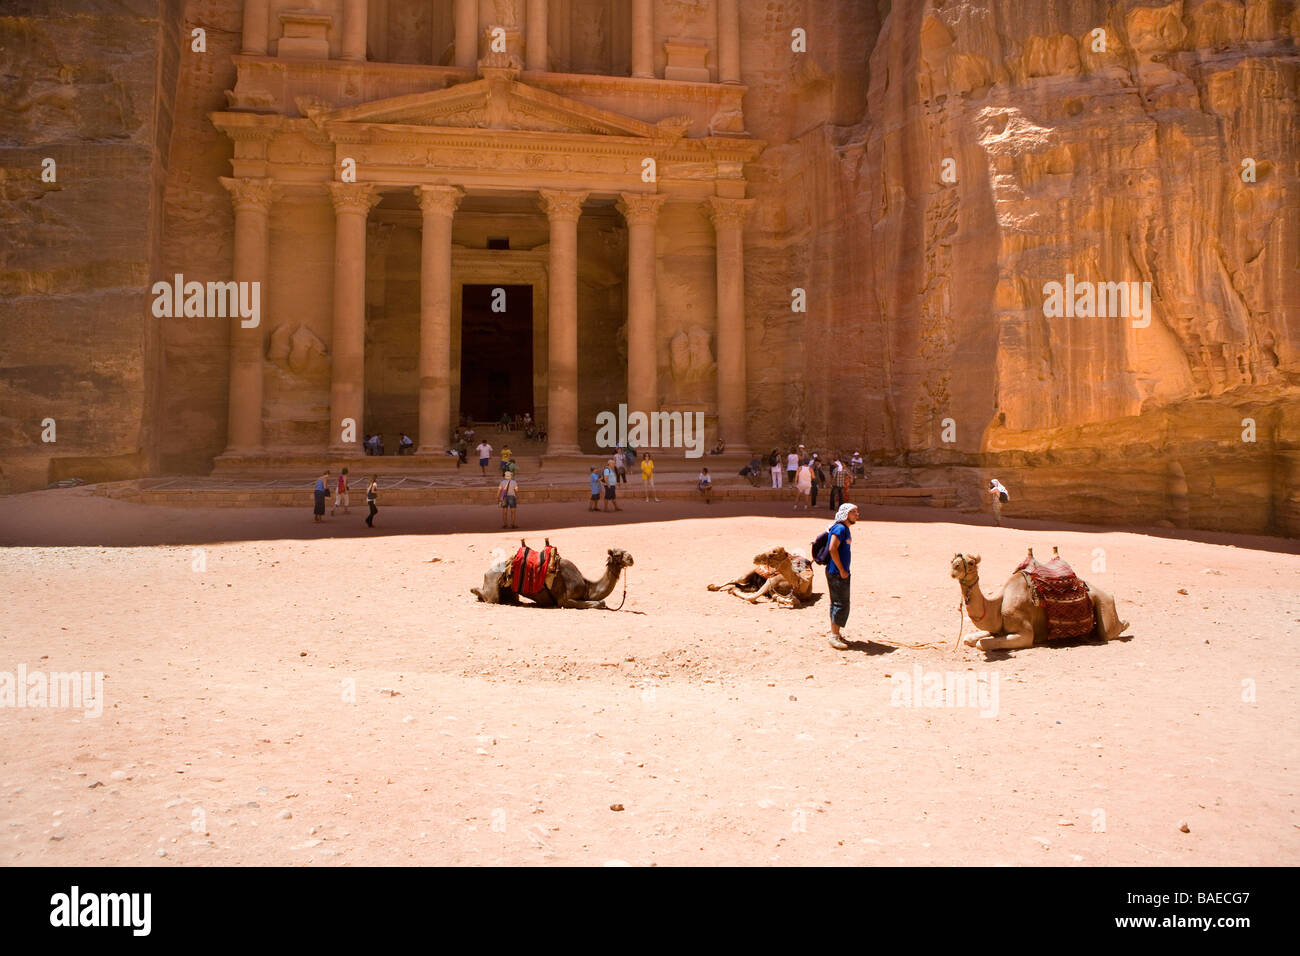 El Khazneh, The Treasury, the most famous building in the ancient city of Petra, Jordan Stock Photo